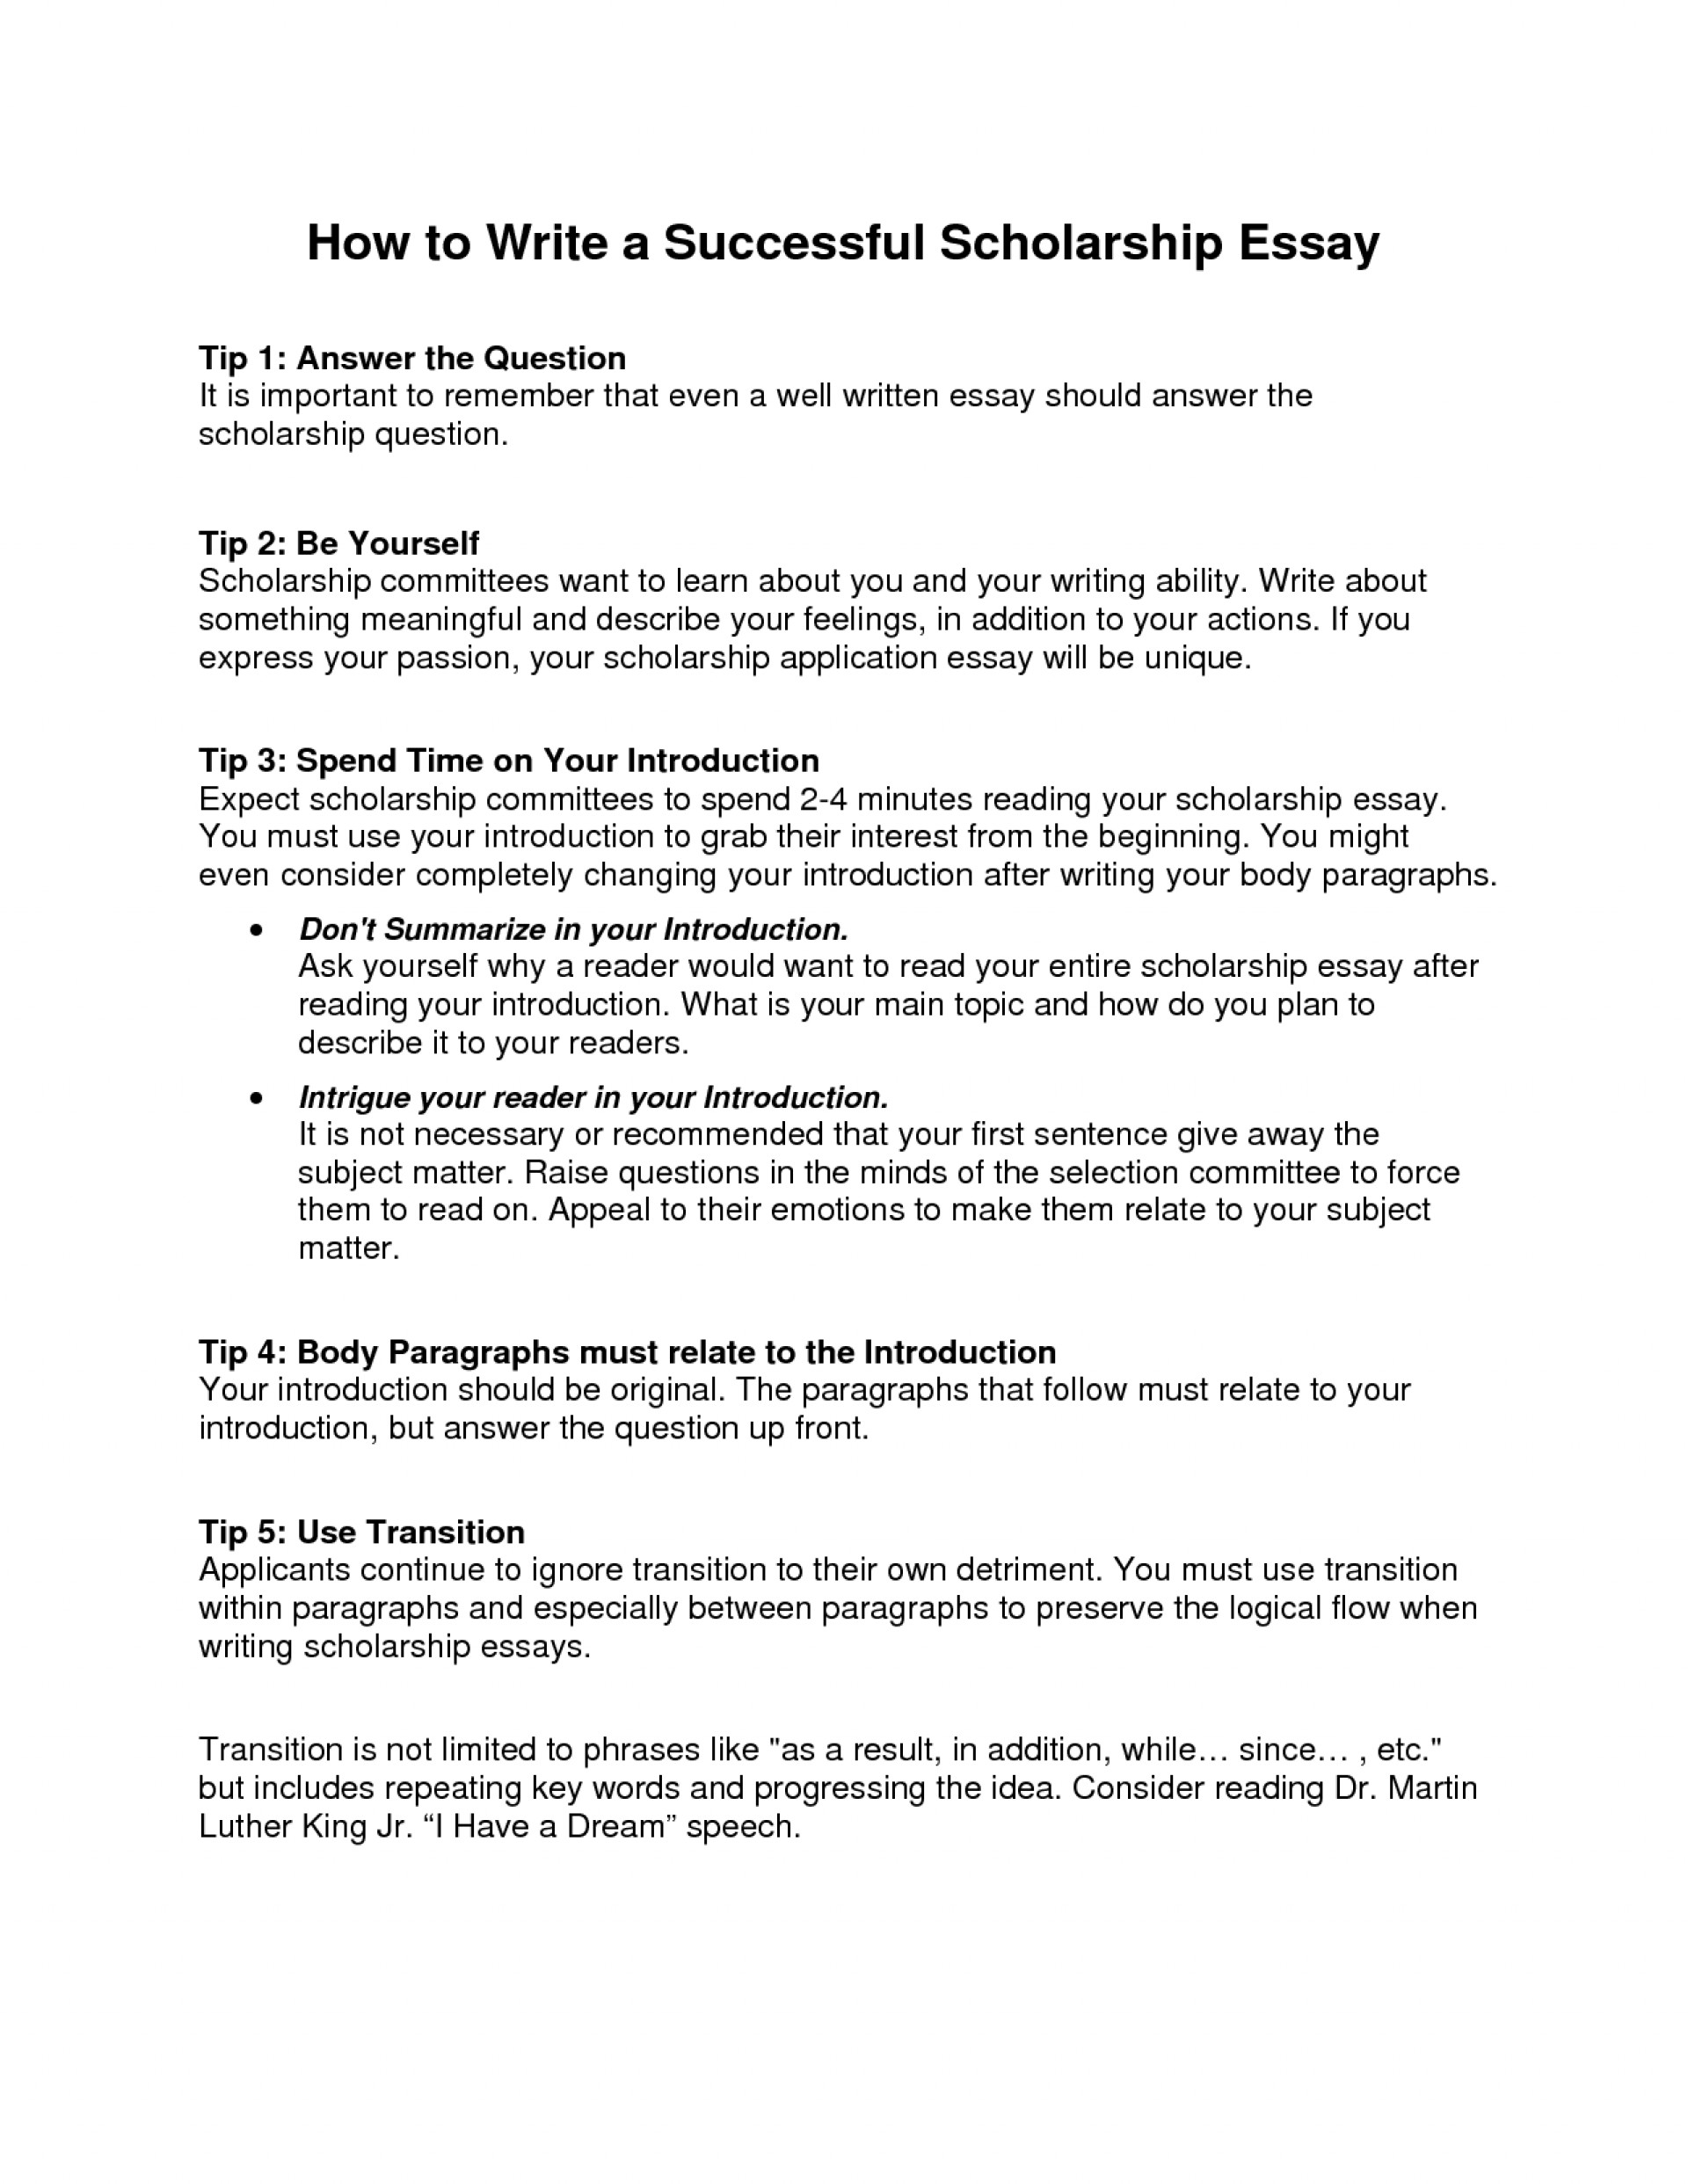 007 How To Write And Essay Example Unique An Outline 6th Grade Conclusion In Mla Format 1920